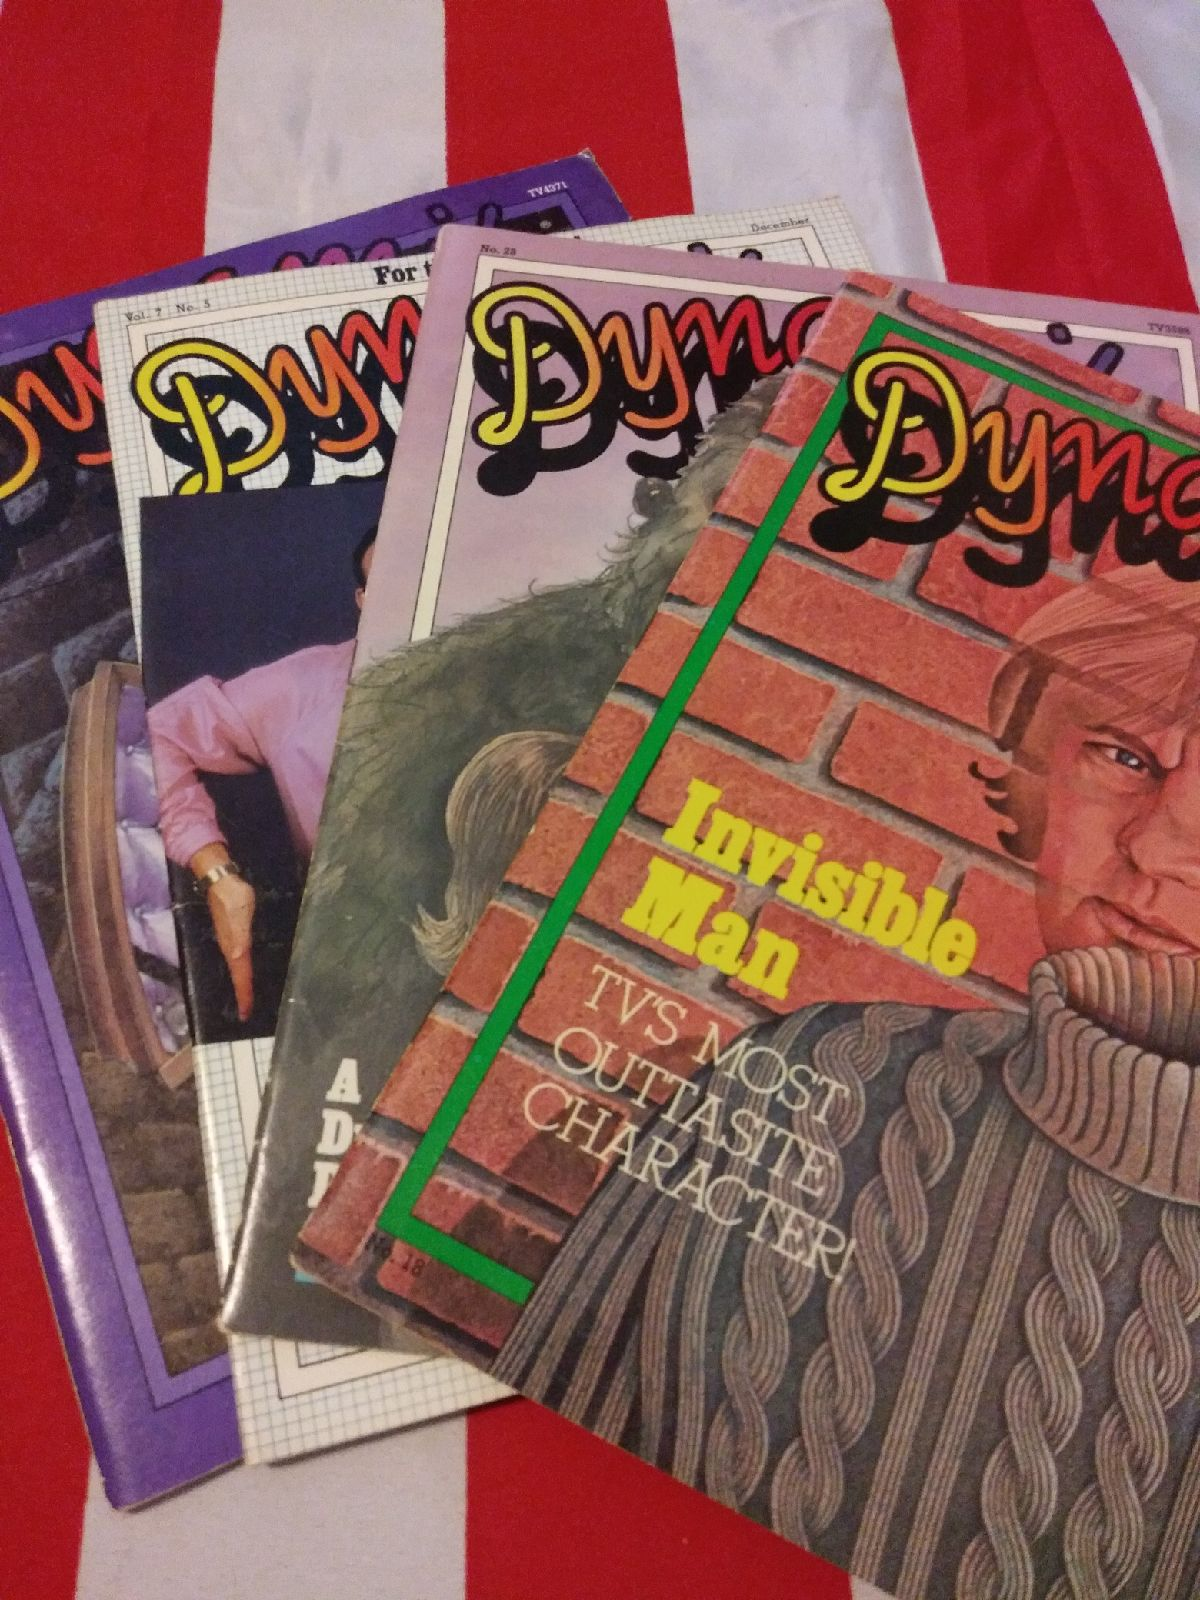 DYNAMITE MAGAZINE (LOT OF 4 ISSUES)